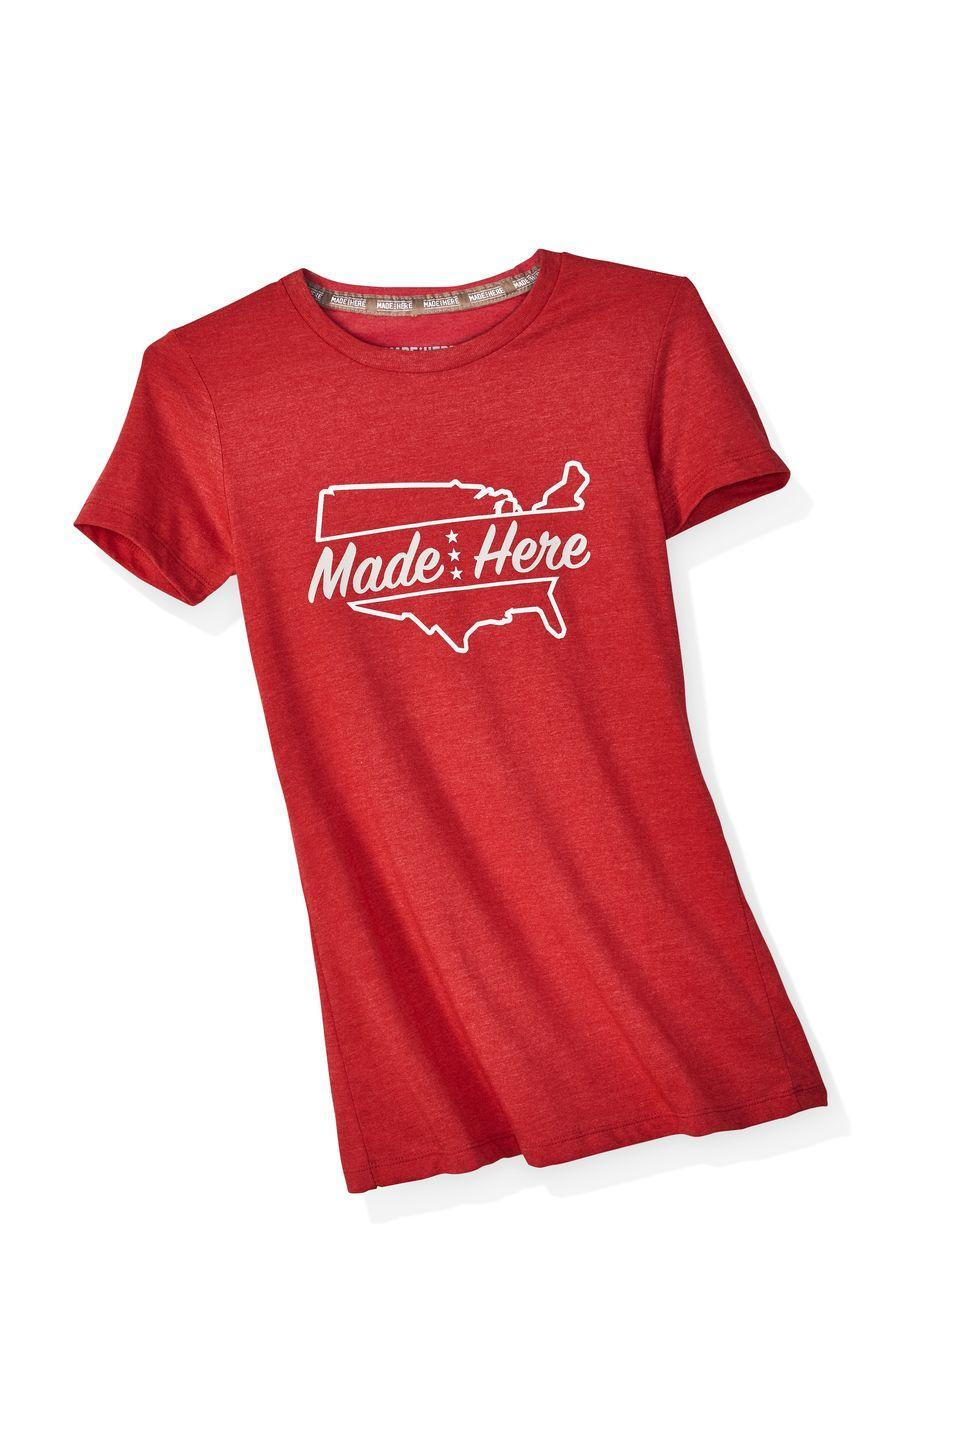 """<p><strong>Made Here Brand</strong></p><p>$14</p><p><a class=""""link rapid-noclick-resp"""" href=""""https://madeherebrand.com/collections/american-made/products/cross-country-womens-tee"""" rel=""""nofollow noopener"""" target=""""_blank"""" data-ylk=""""slk:SHOP NOW"""">SHOP NOW</a> </p><p><em>Originally $14, now 20 percent off with code OPRAH </em></p><p>Celebrate the Fourth of July by investing in the talent and ingenuity of the American worker. Cofounded by actor Scott Eastwood, Made Here produces very adorable and extremely affordable tees in Los Angeles.</p>"""